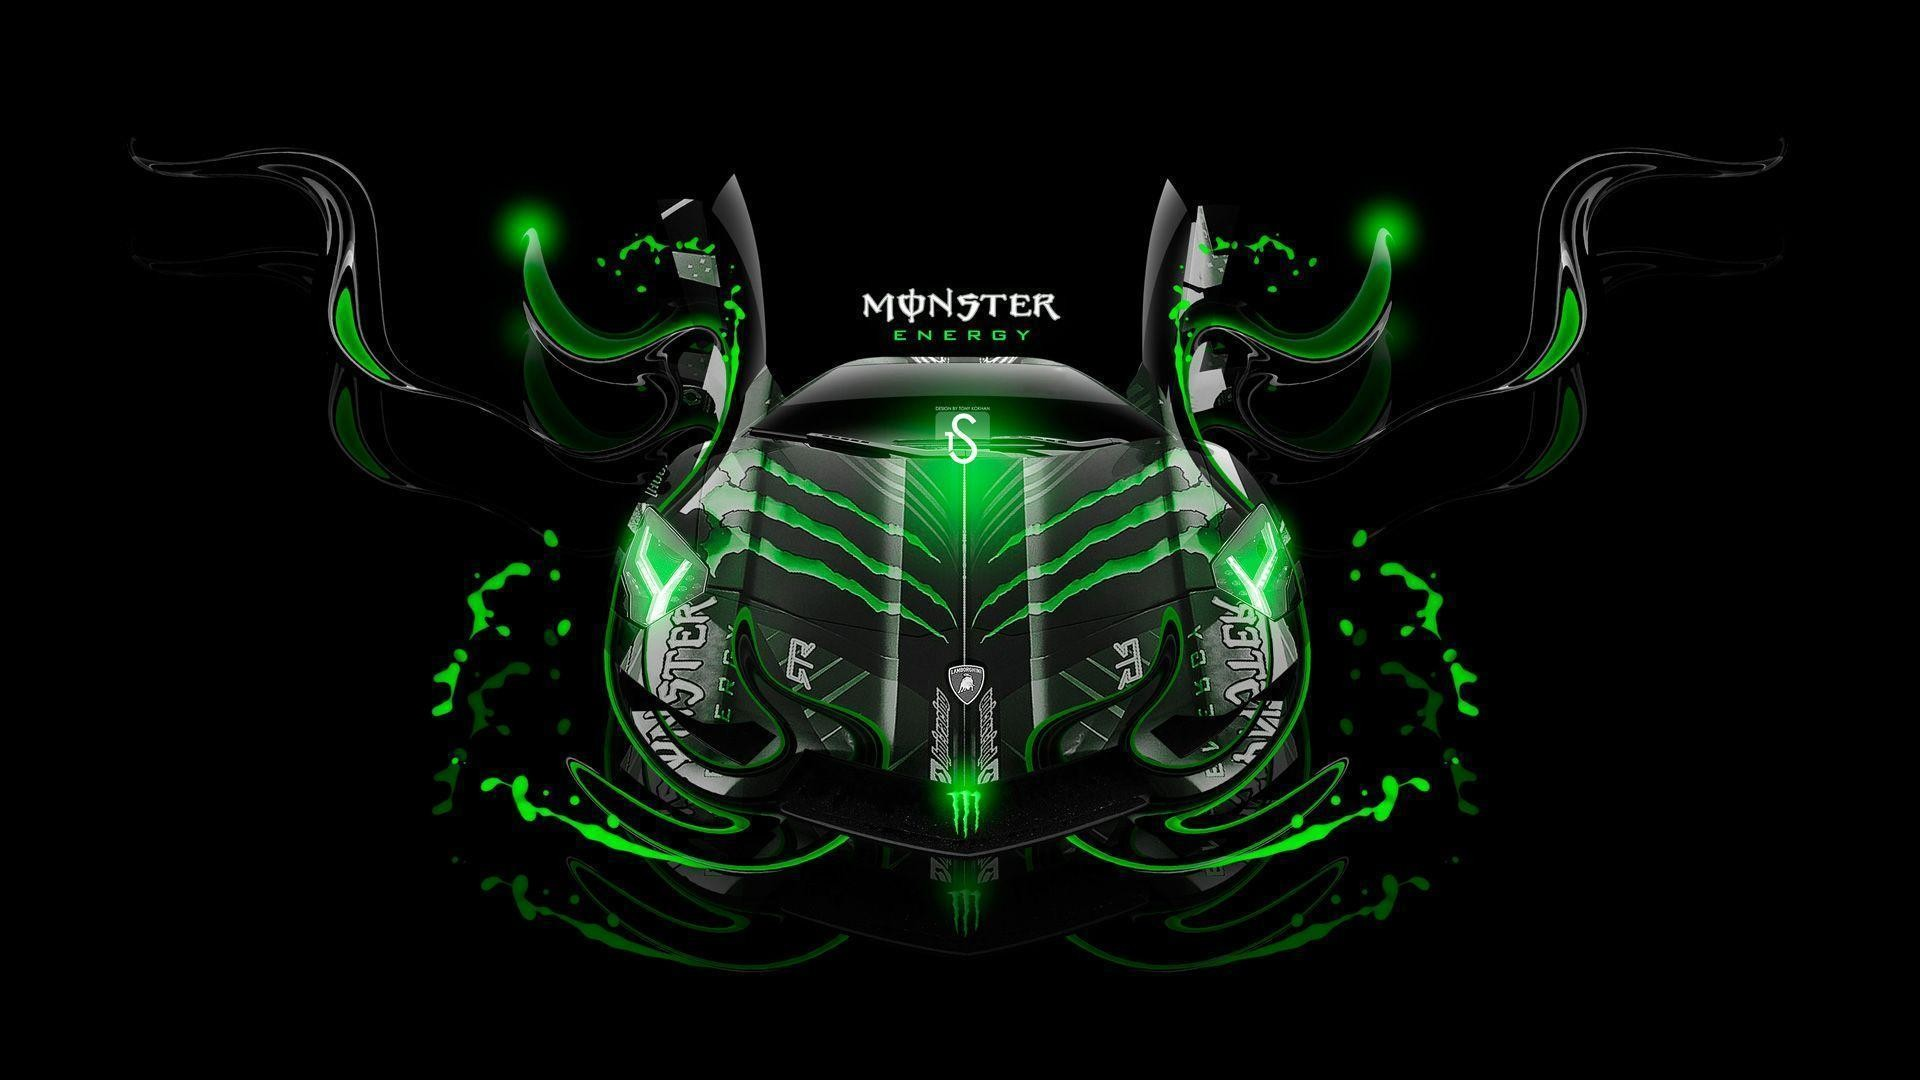 Monster Energy Wallpapers 1